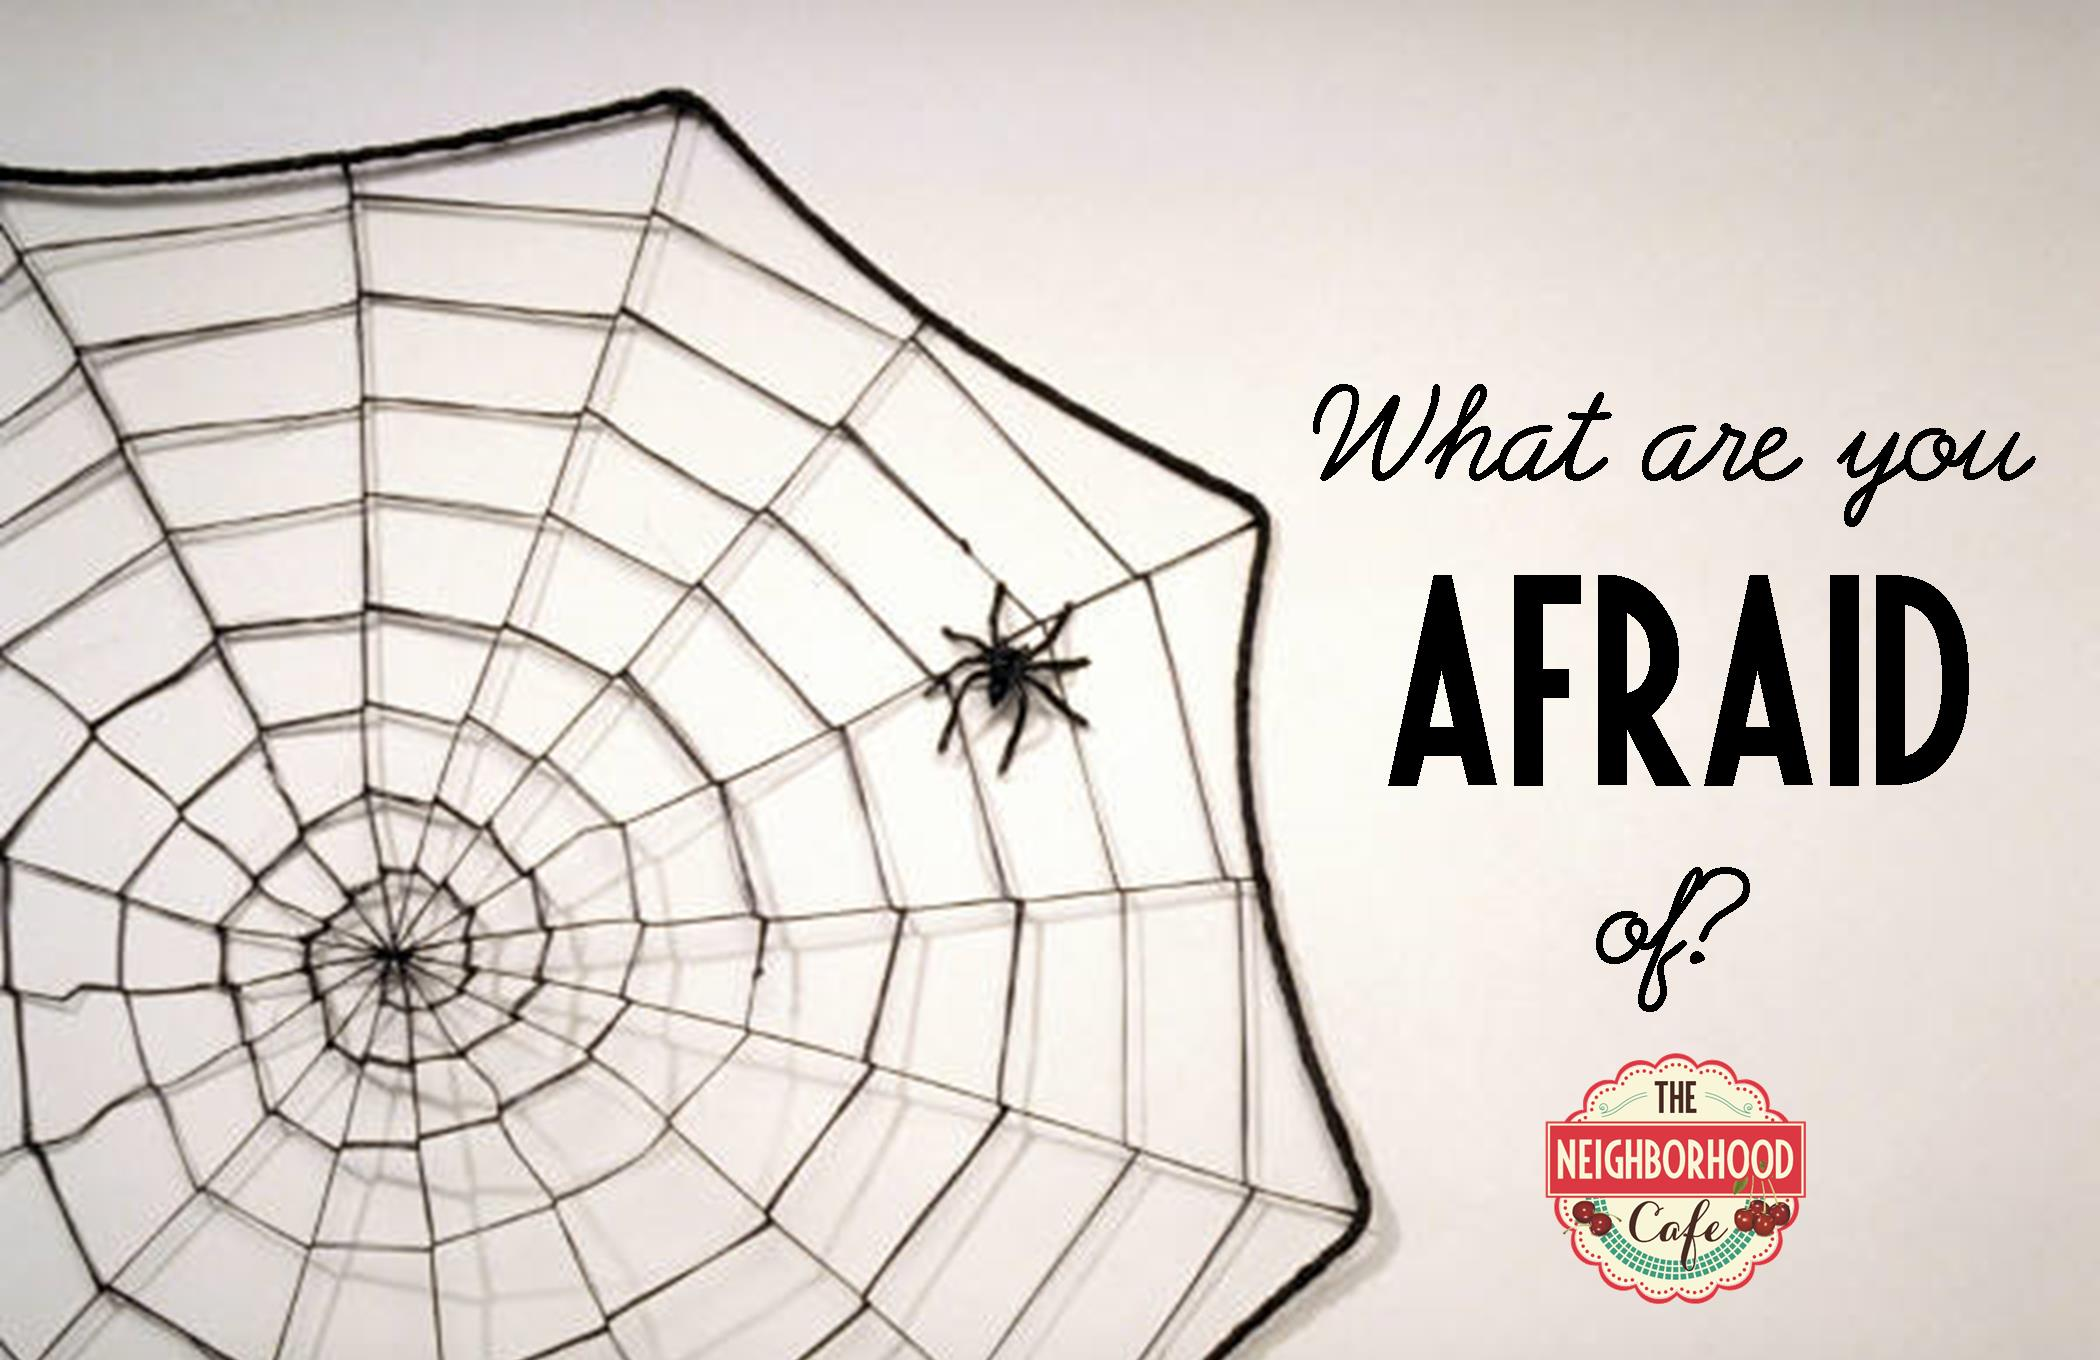 What are you afraid of